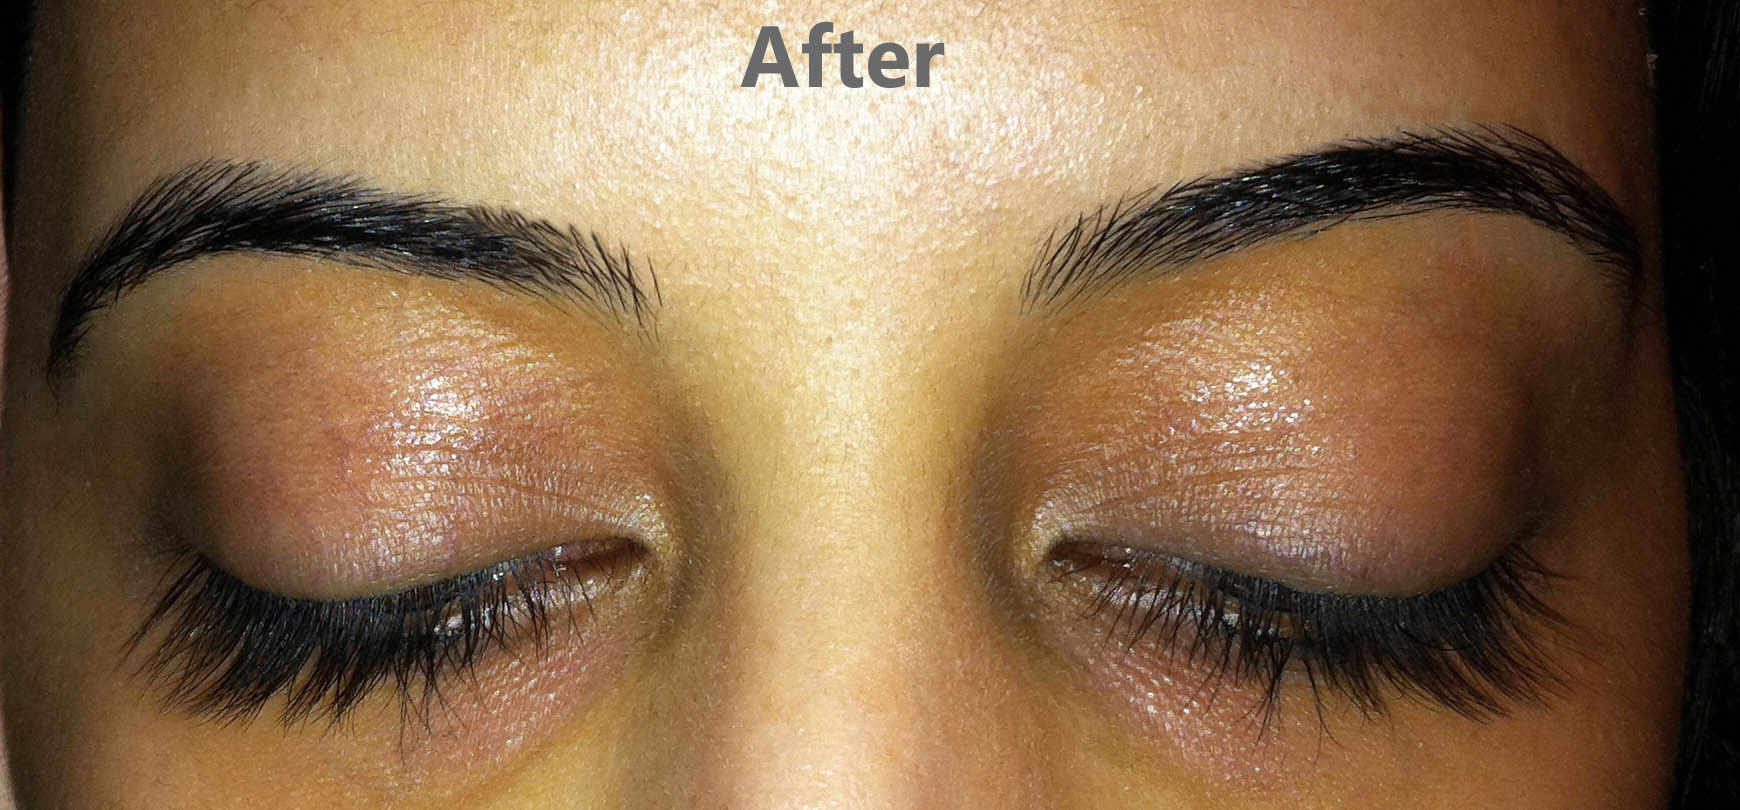 Facial & Eyebrow Threading- Beautiful brows at Silk & Stone!